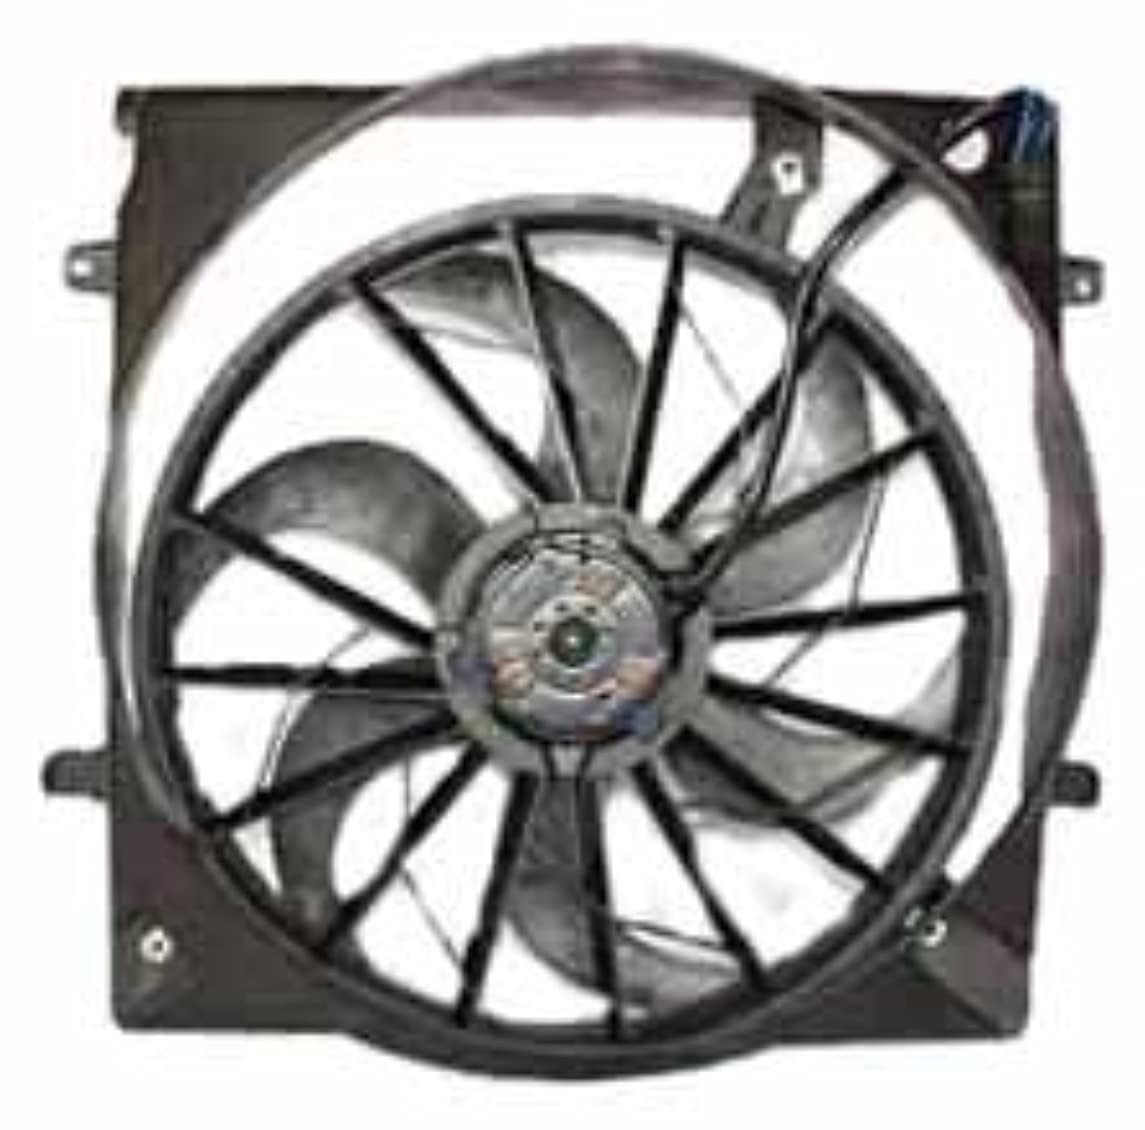 TYC 621560 Jeep Liberty Replacement Radiator/Condenser Cooling Fan Assembly